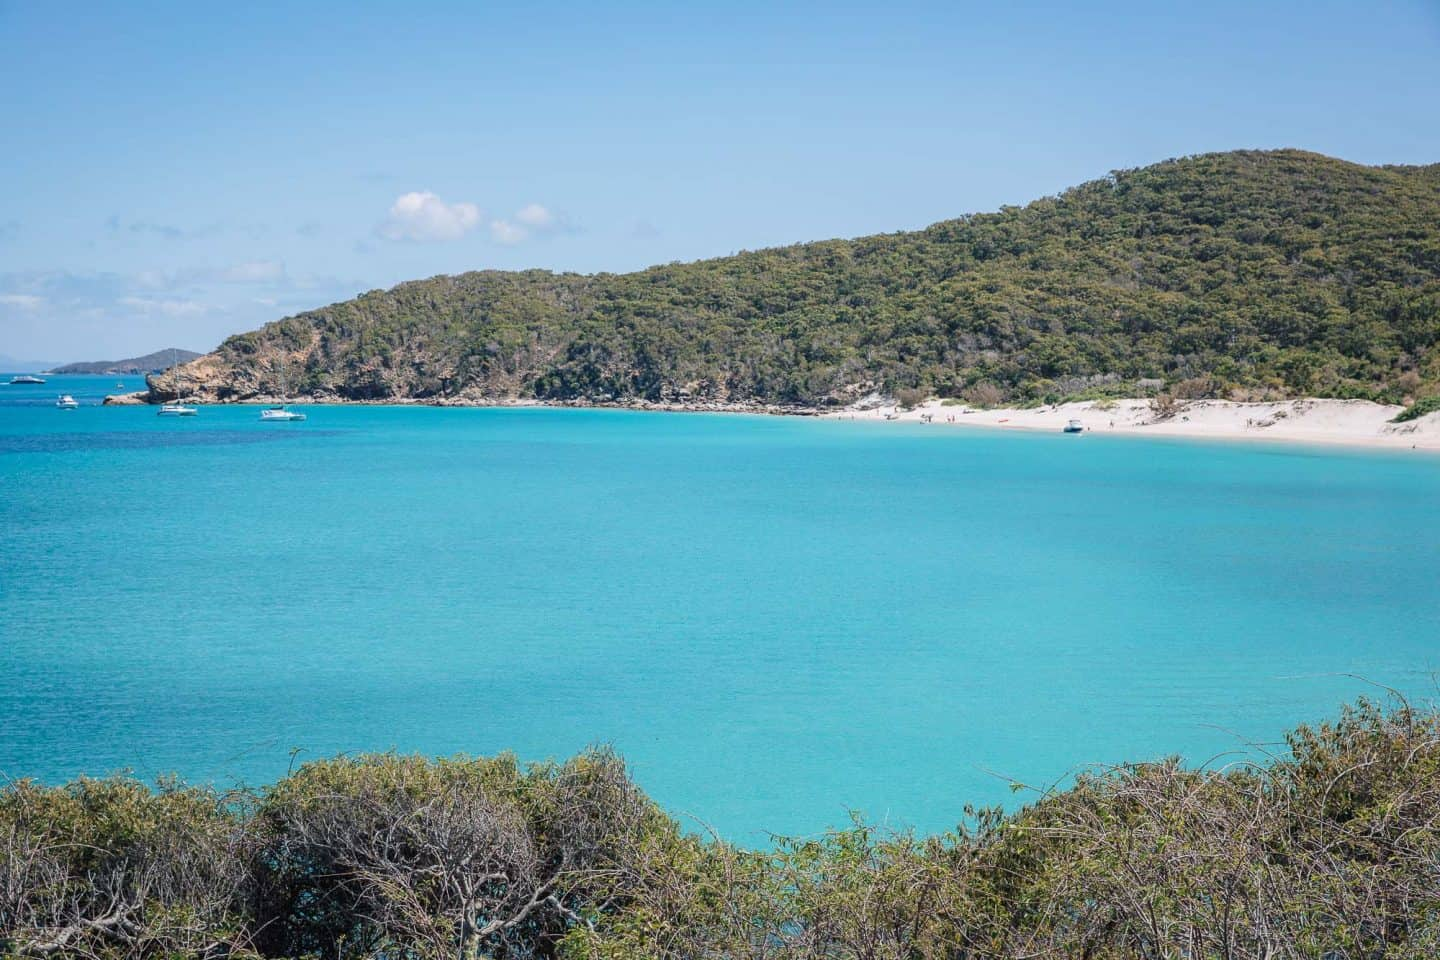 great keppel island, keppel island, things to do in great keppel island, monkey beach great keppel island